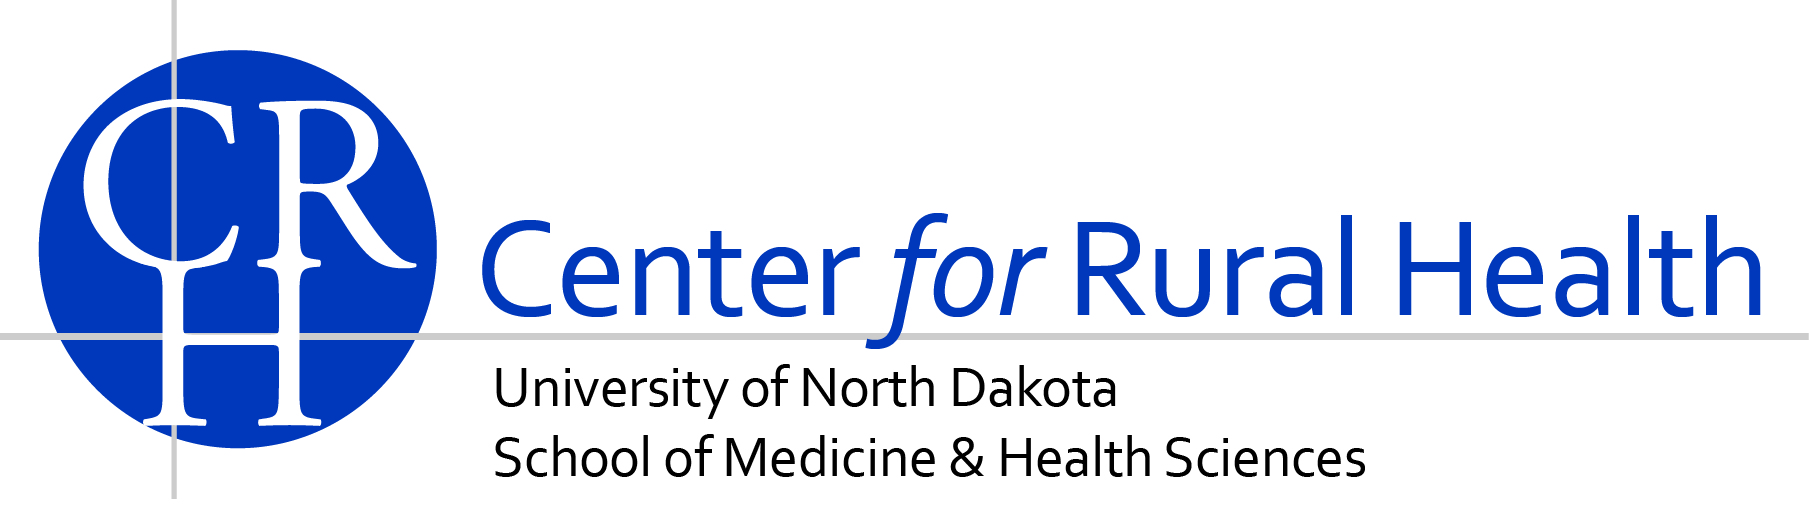 University of North Dakota Center for Rural Health